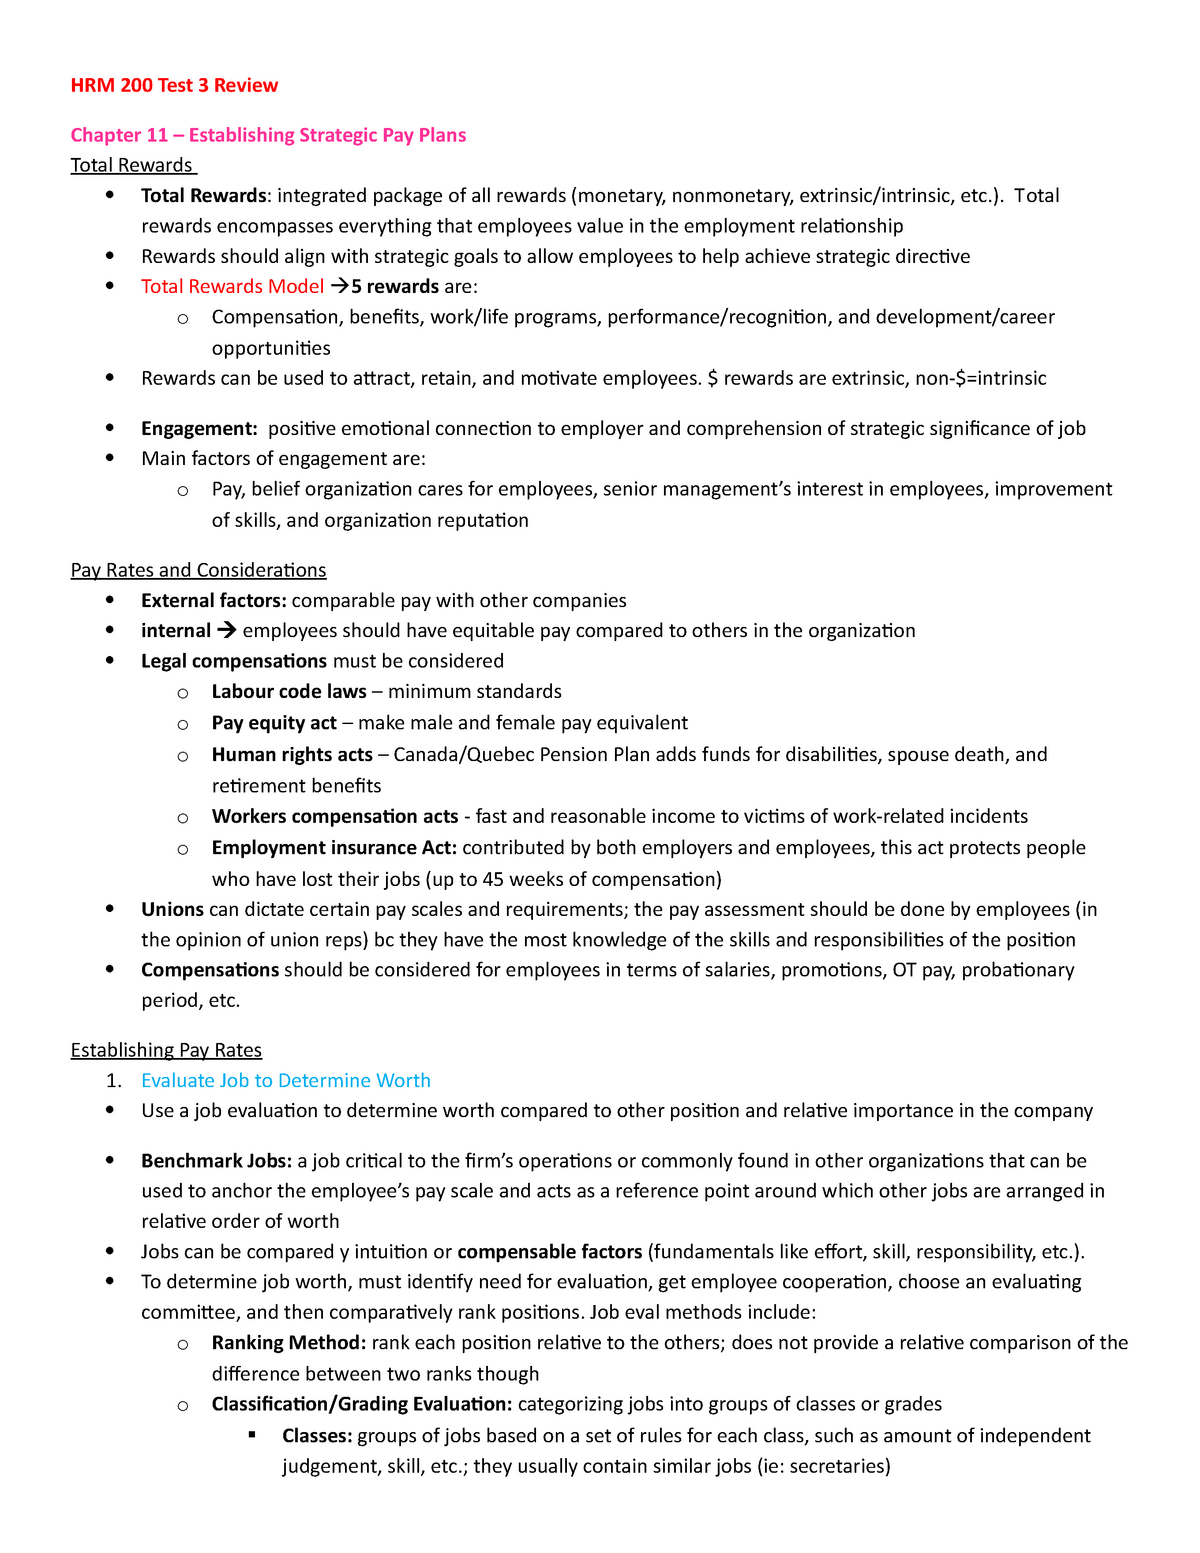 Calcul Salaire Net Québec >> Hrm 200 Test 3 Review Summary Basic Human Resources Mgmt Studocu